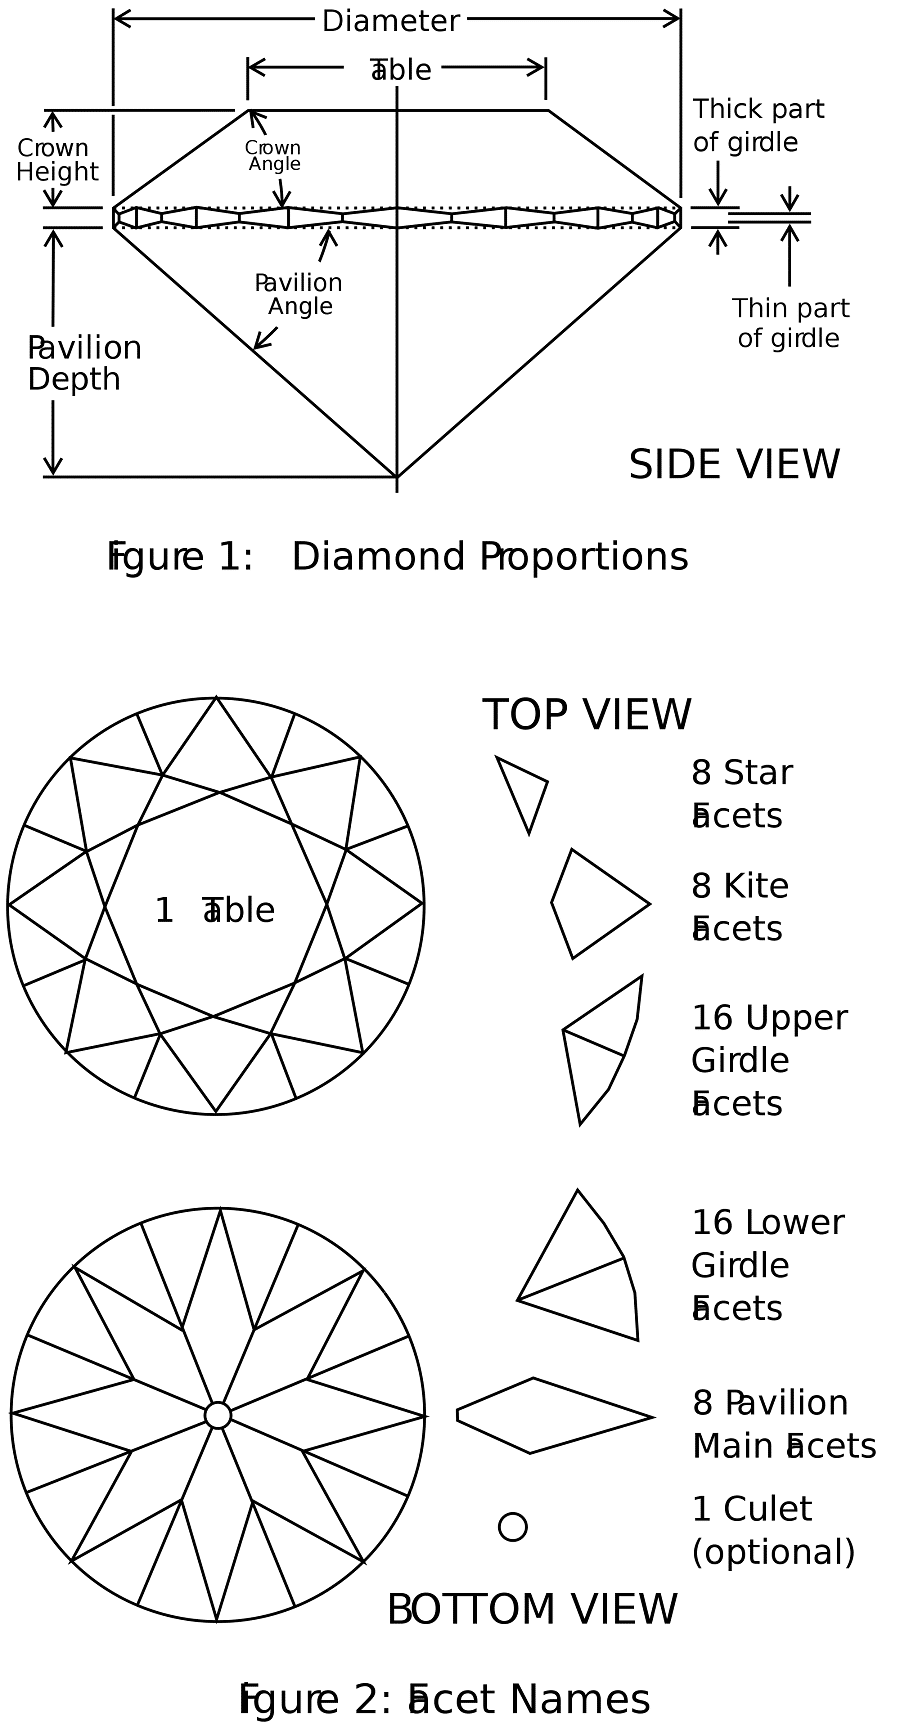 The many facets of a diamond